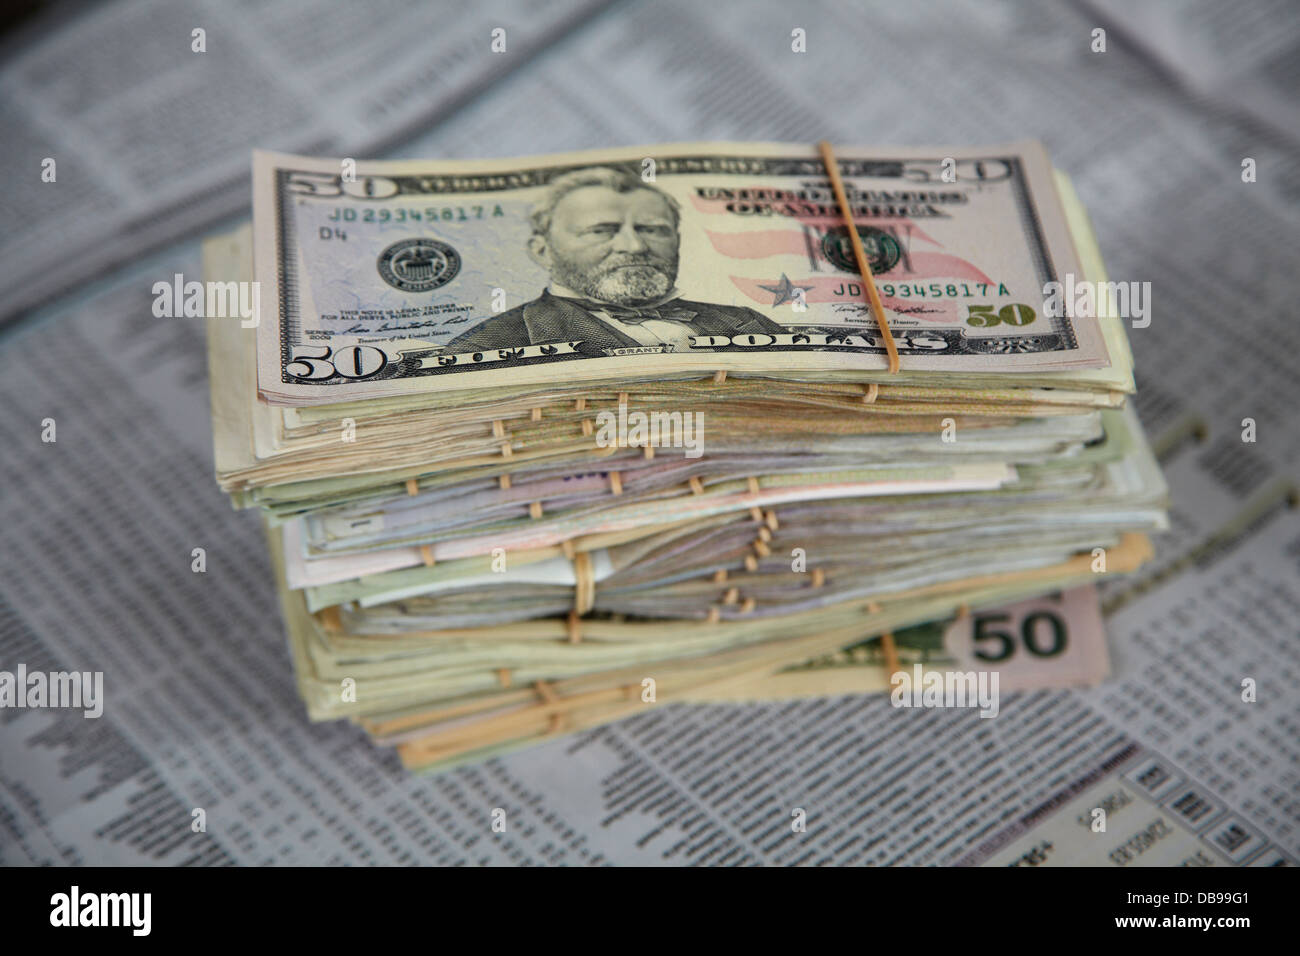 US dollars and financial pages in newspaper - Stock Image